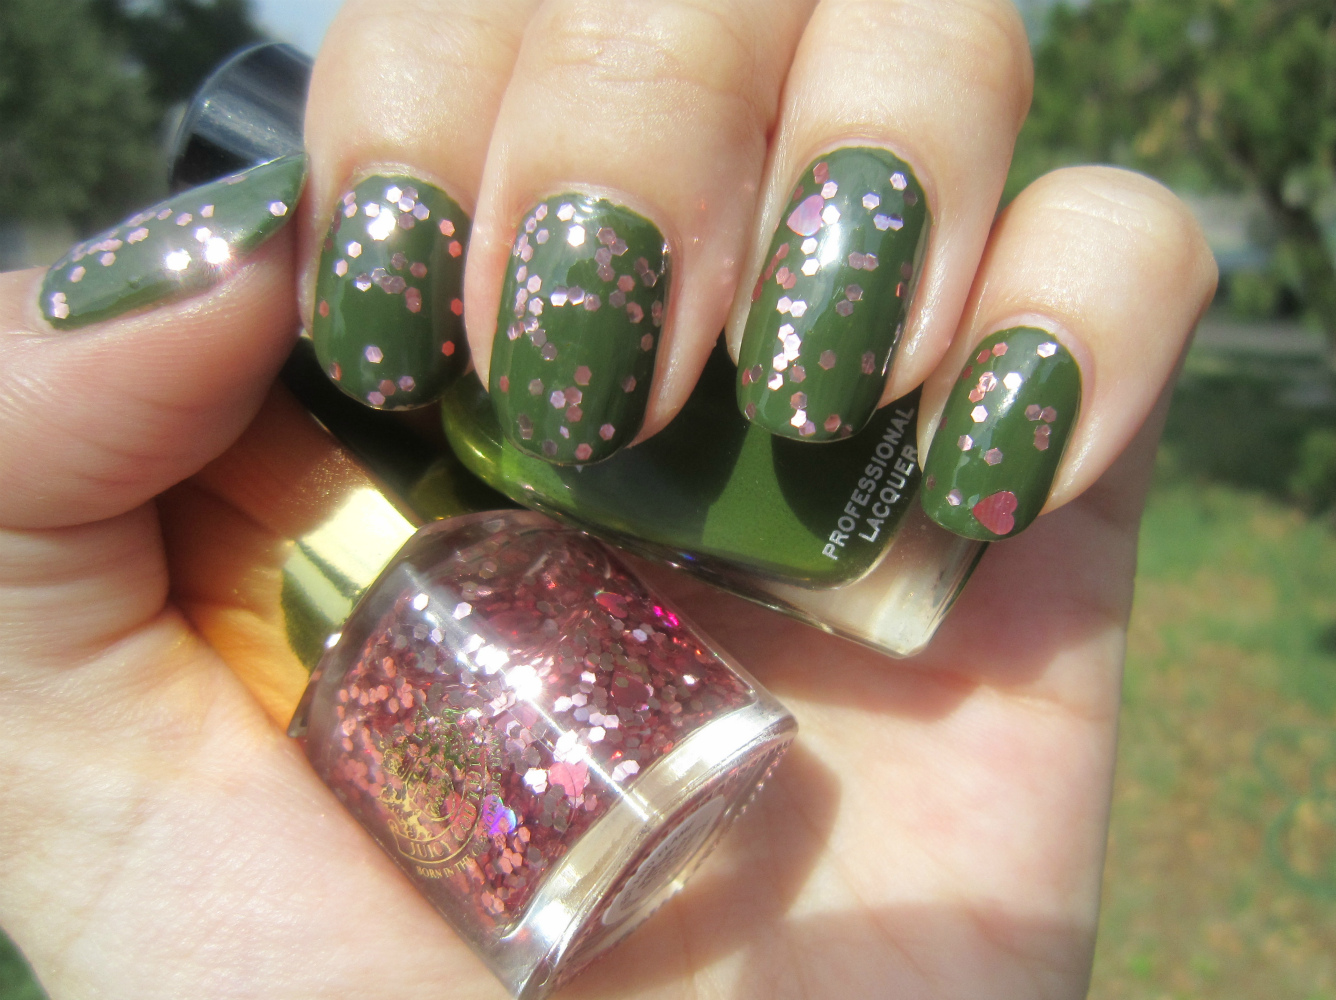 Concrete and Nail Polish: Juicy Couture Pink Glitter & Zoya Shawn